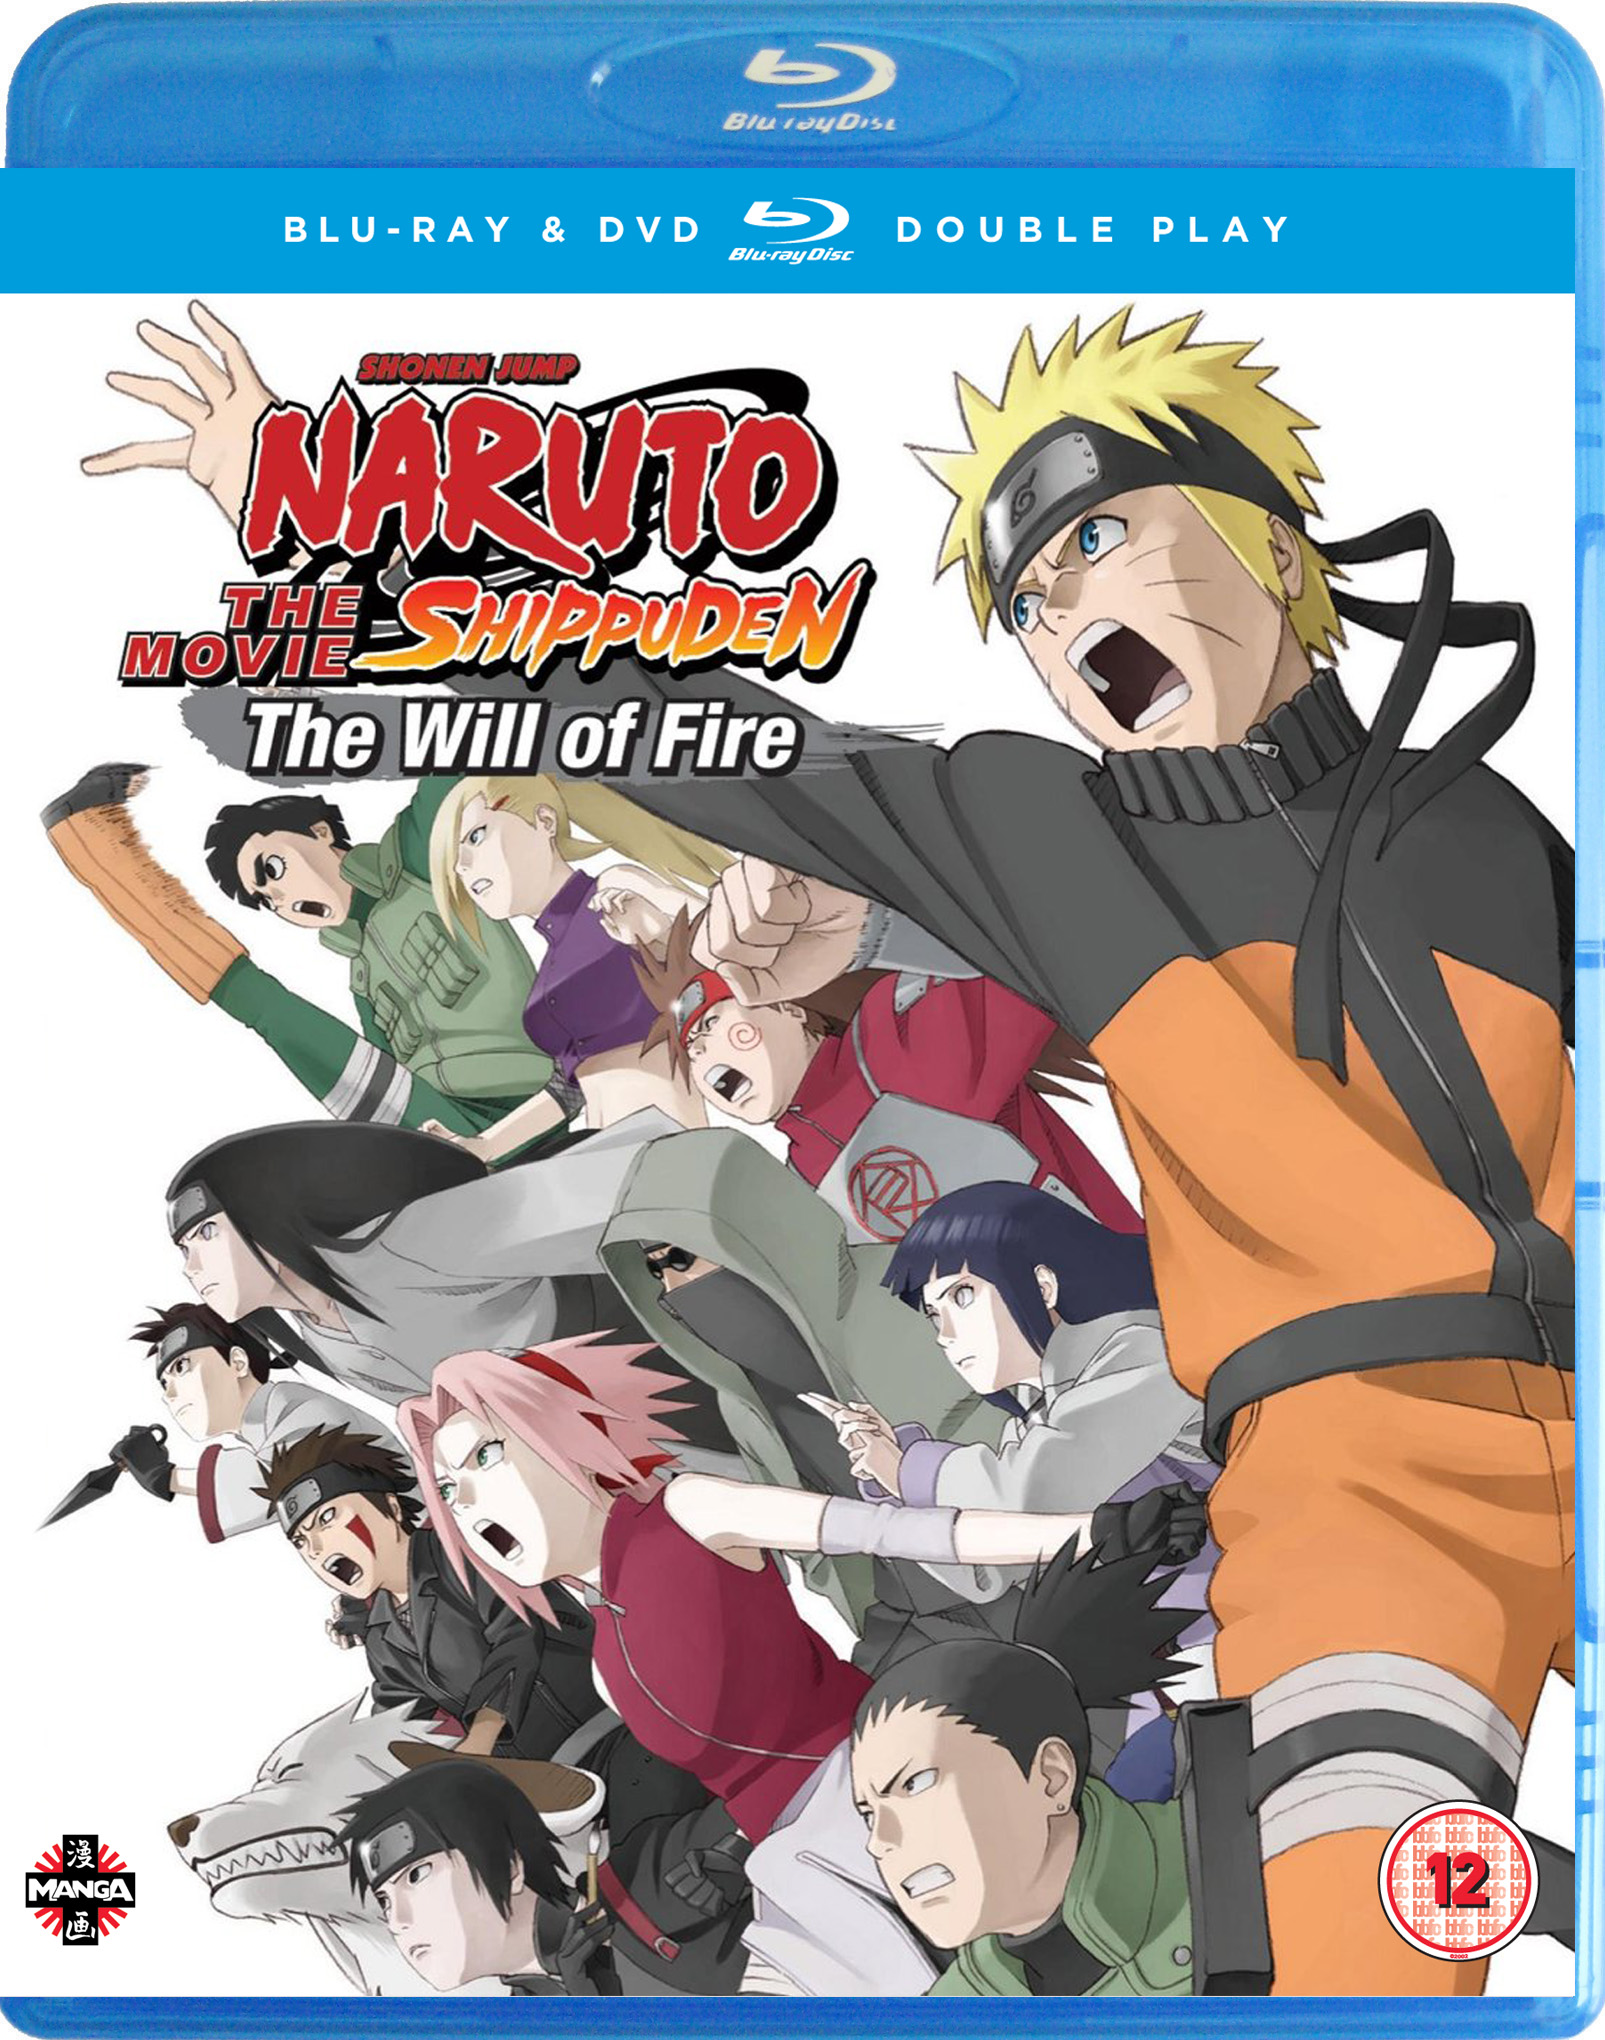 Naruto shippuden movie 3